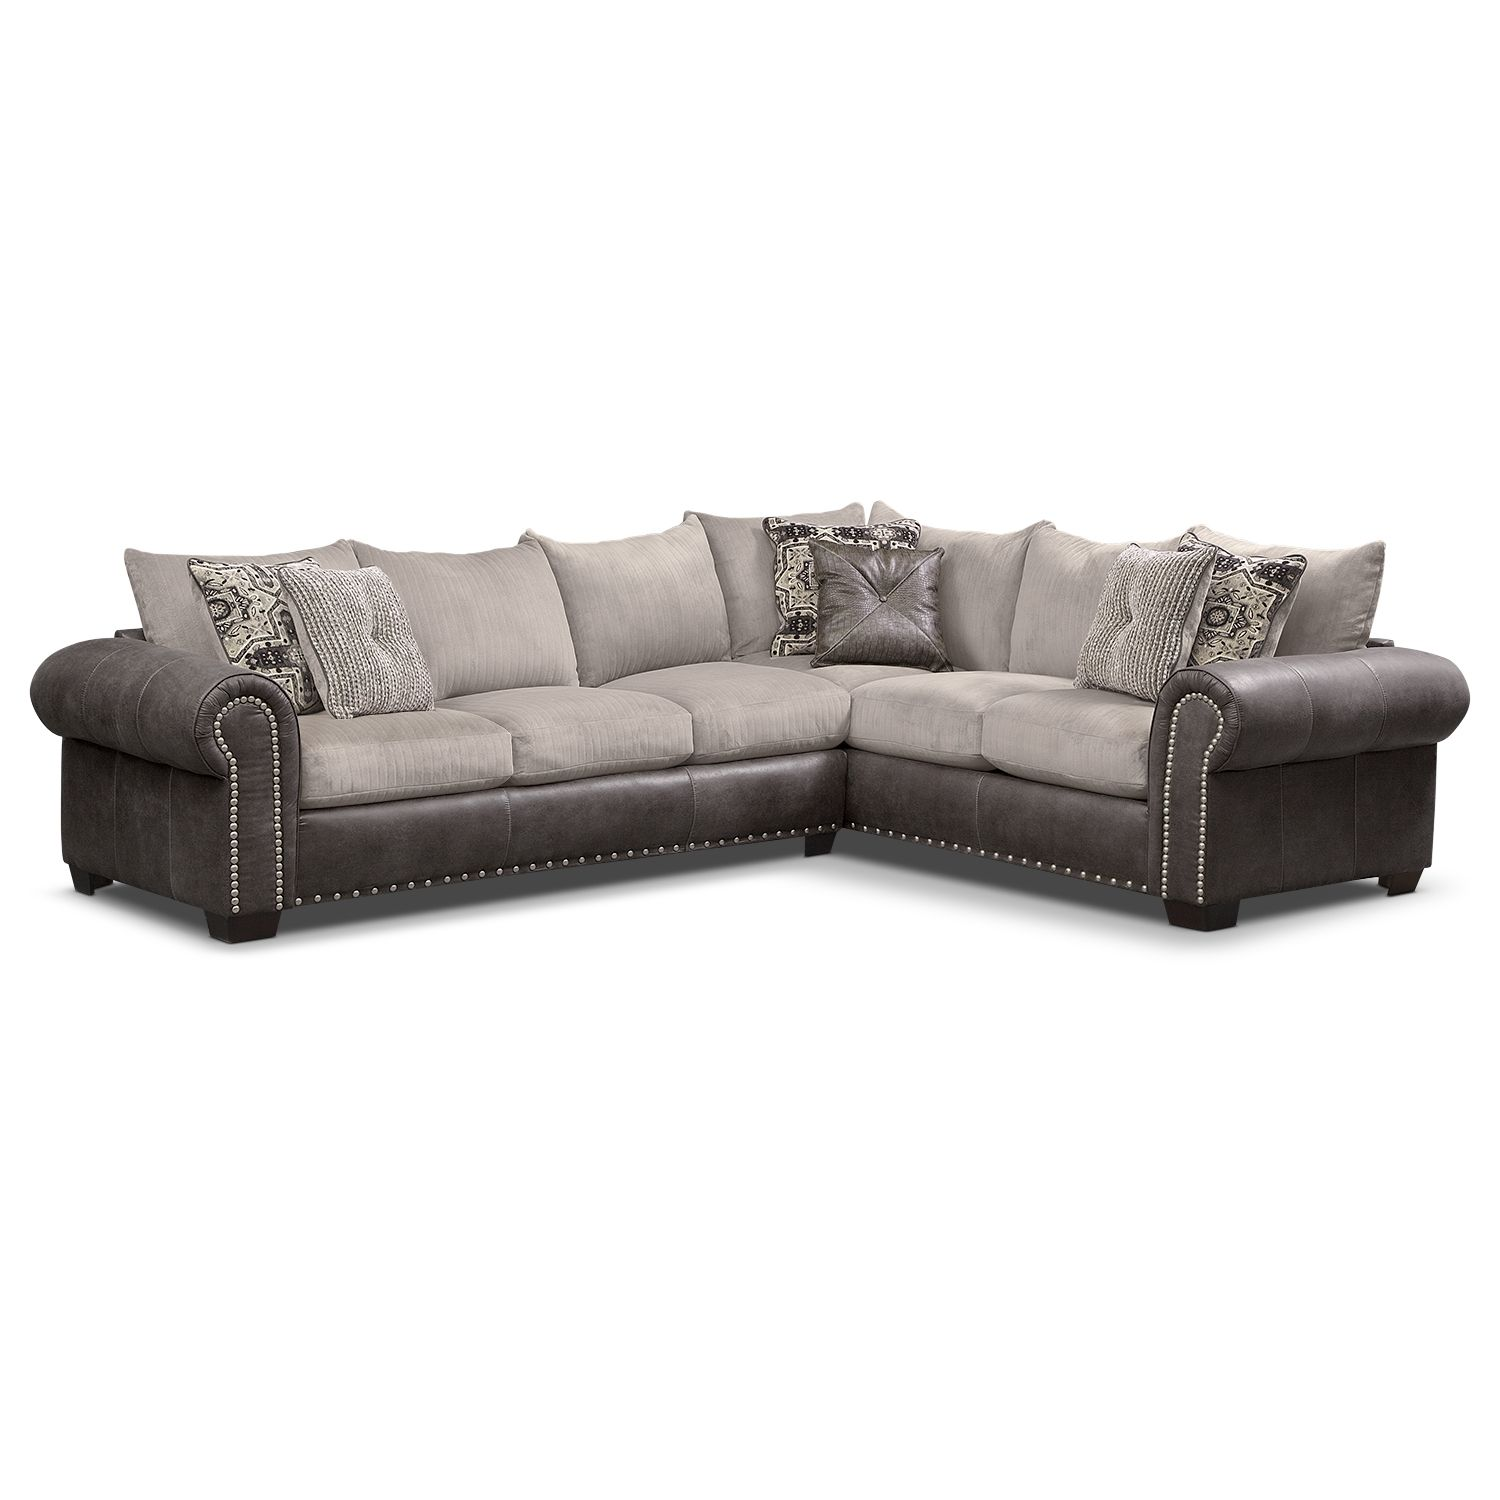 Sonoma 2 Pc Sleeper Sectional